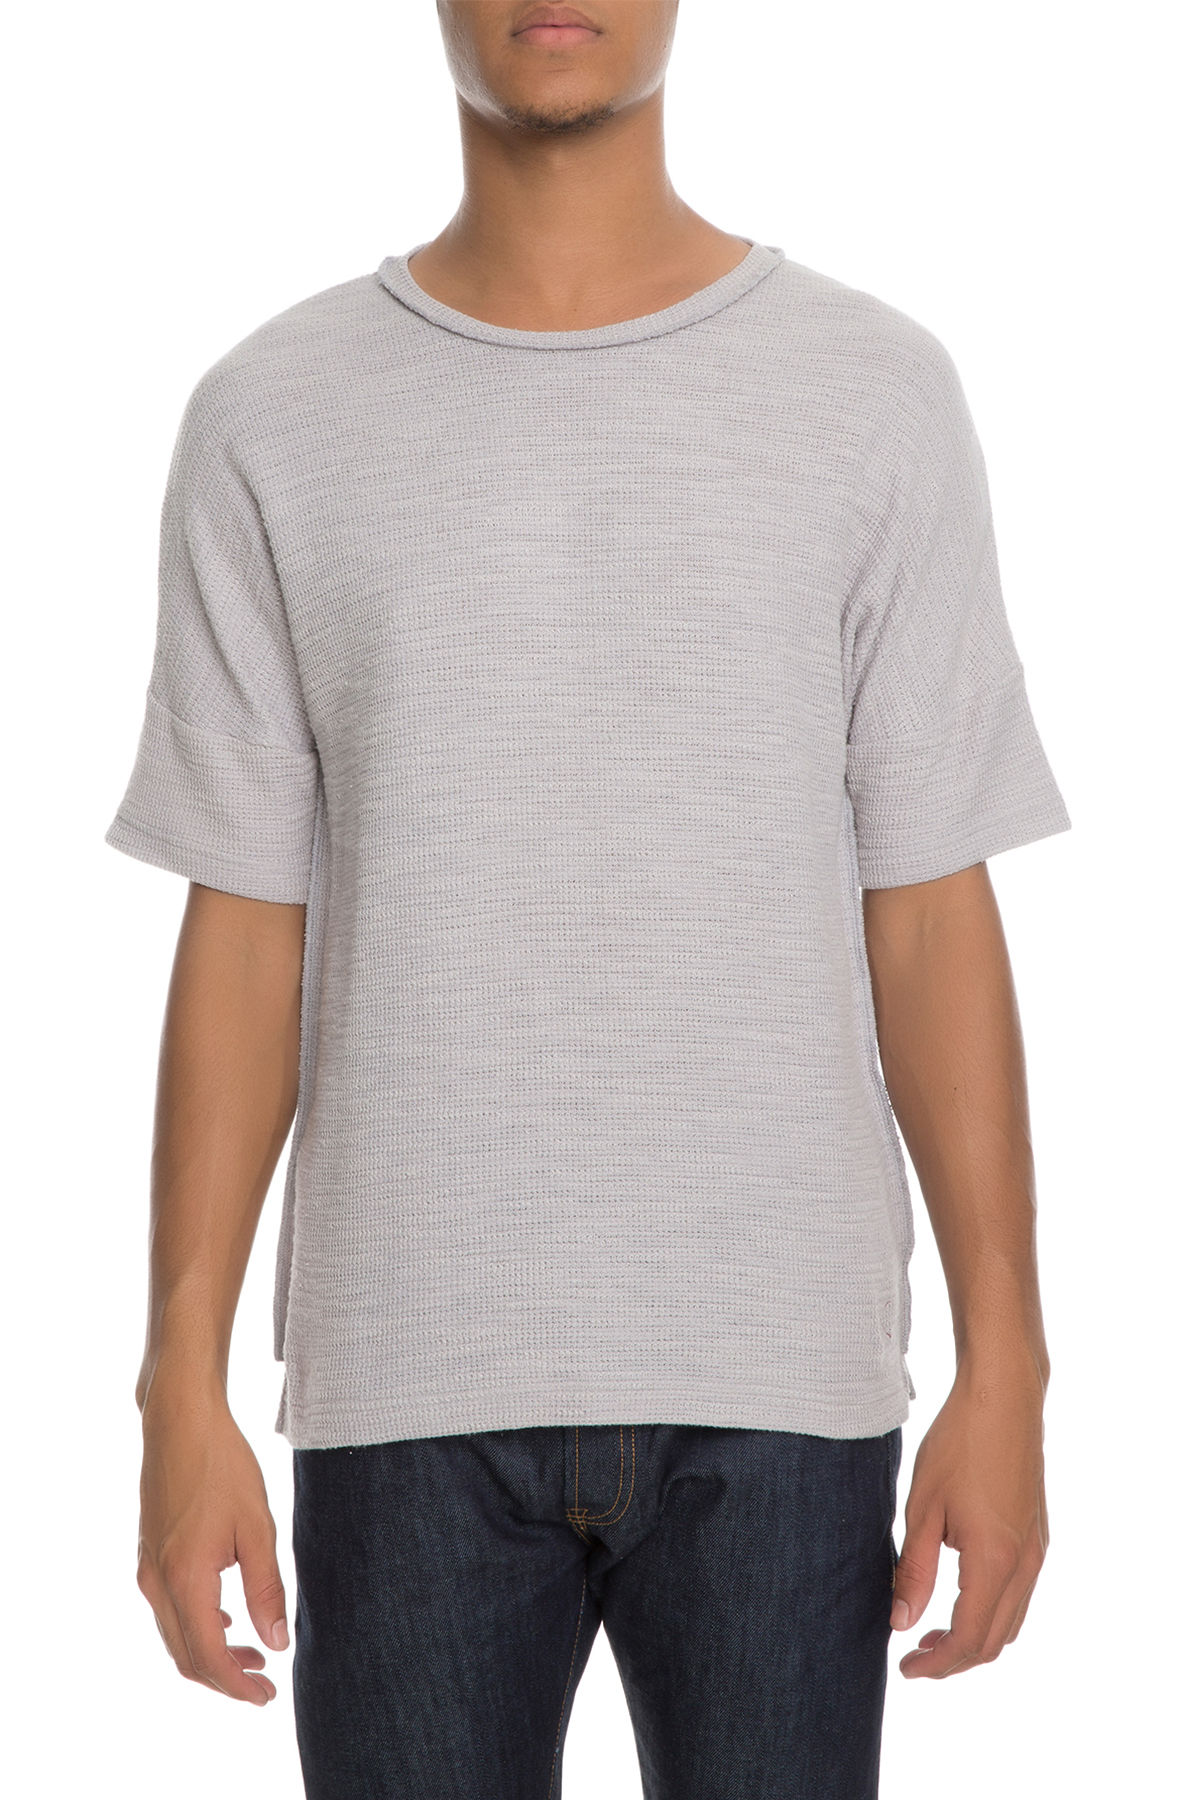 The Vulpes Off Shoulder Tee in Grey